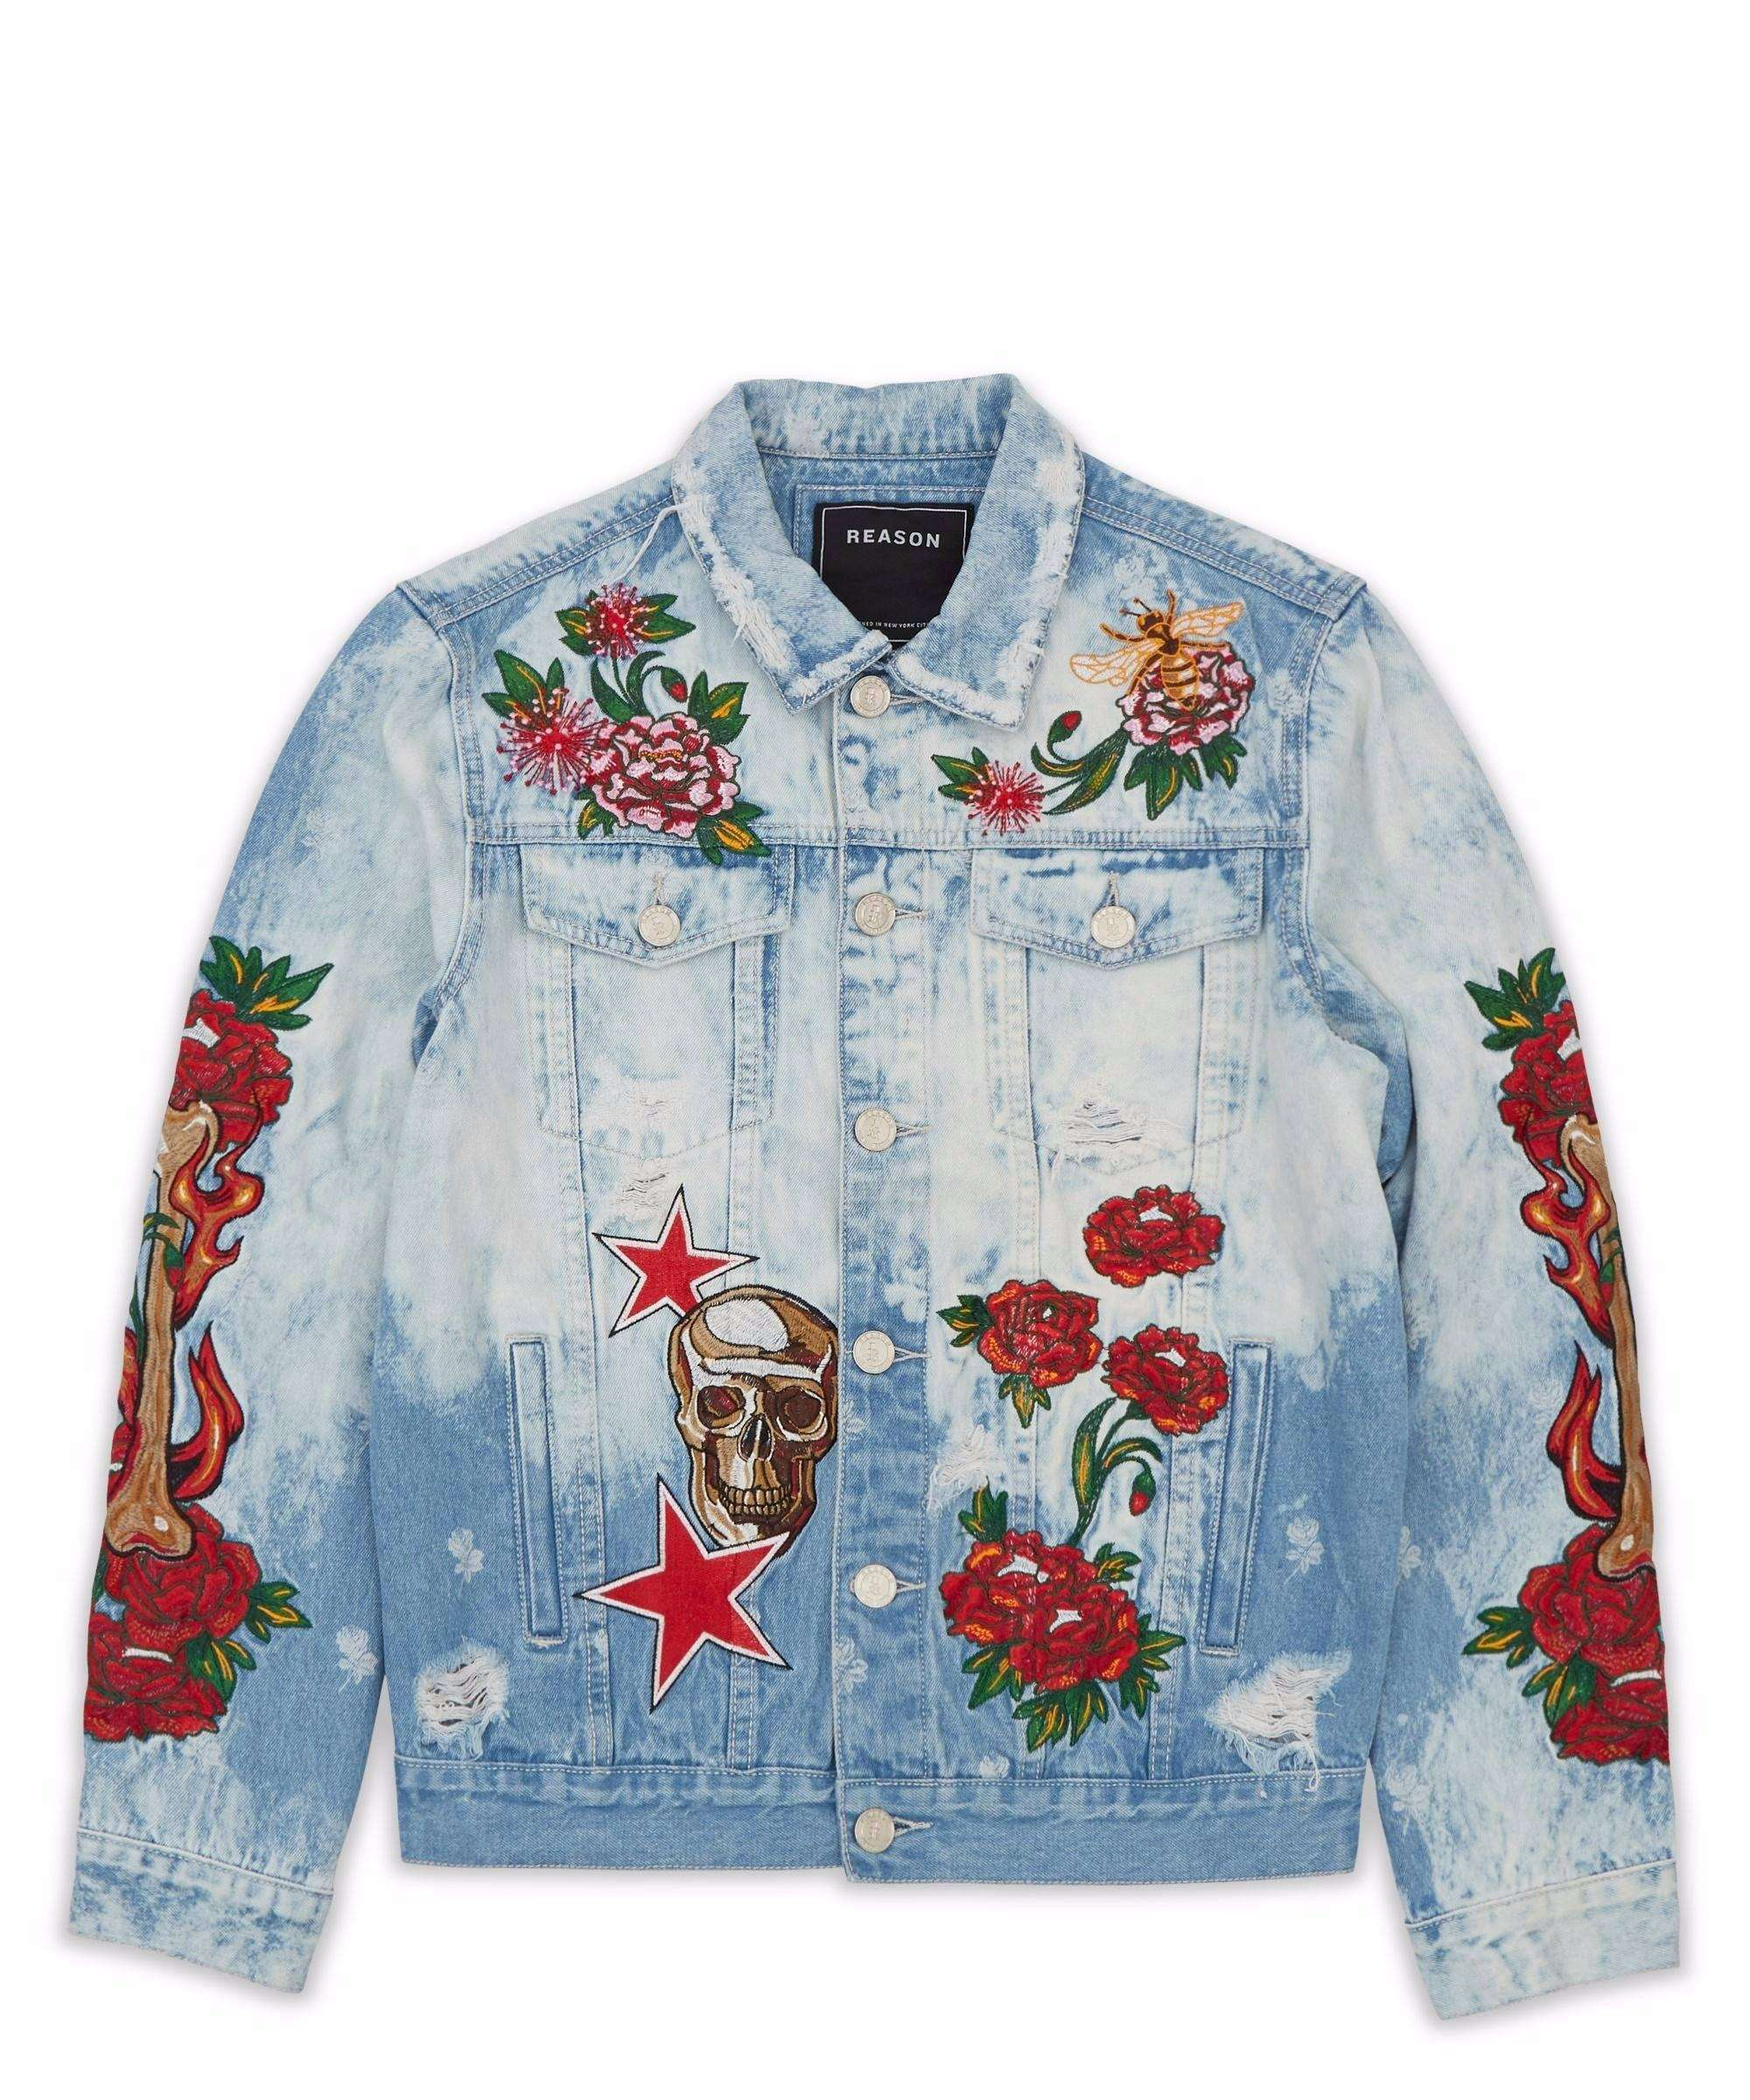 VINTAGE REVIVAL DENIM JACKET